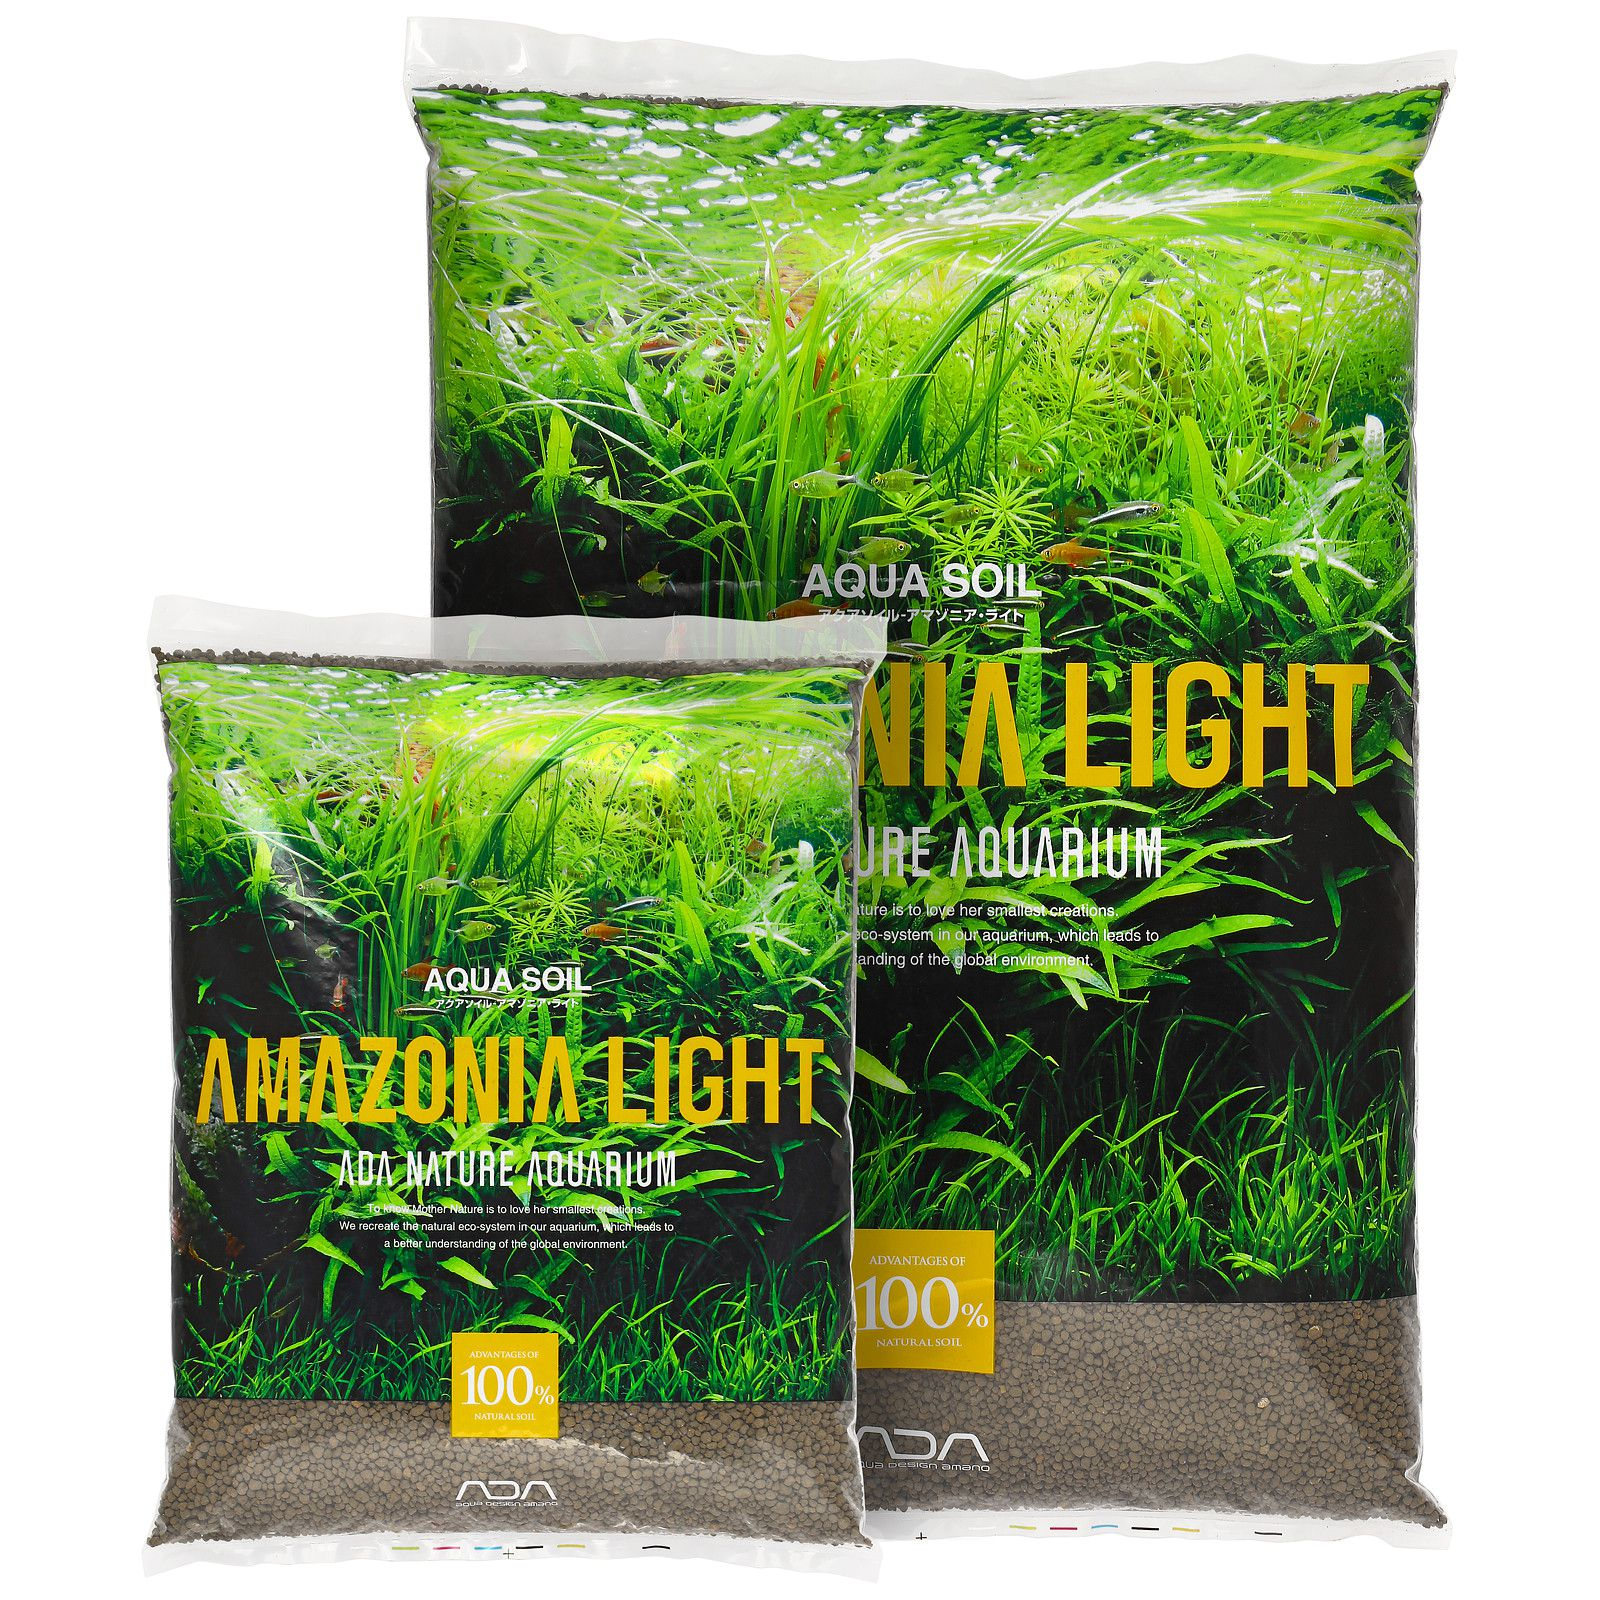 ADA - Aqua Soil - Amazonia Light